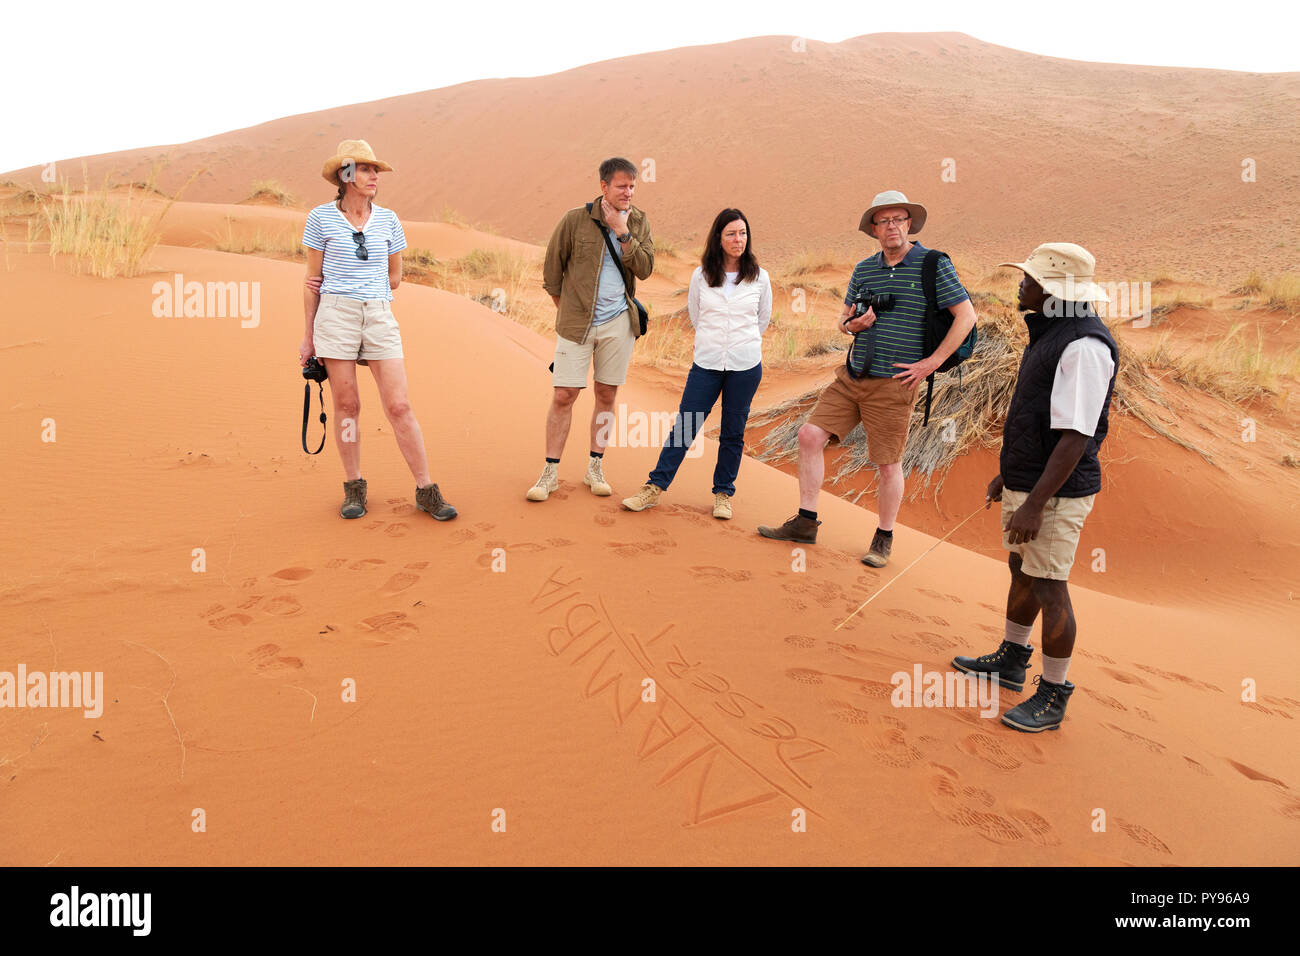 Namibia tour guide and tourist group on a guided tour of the Namibia desert; the Namib Naukluft national park, Namibia Africa - Stock Image